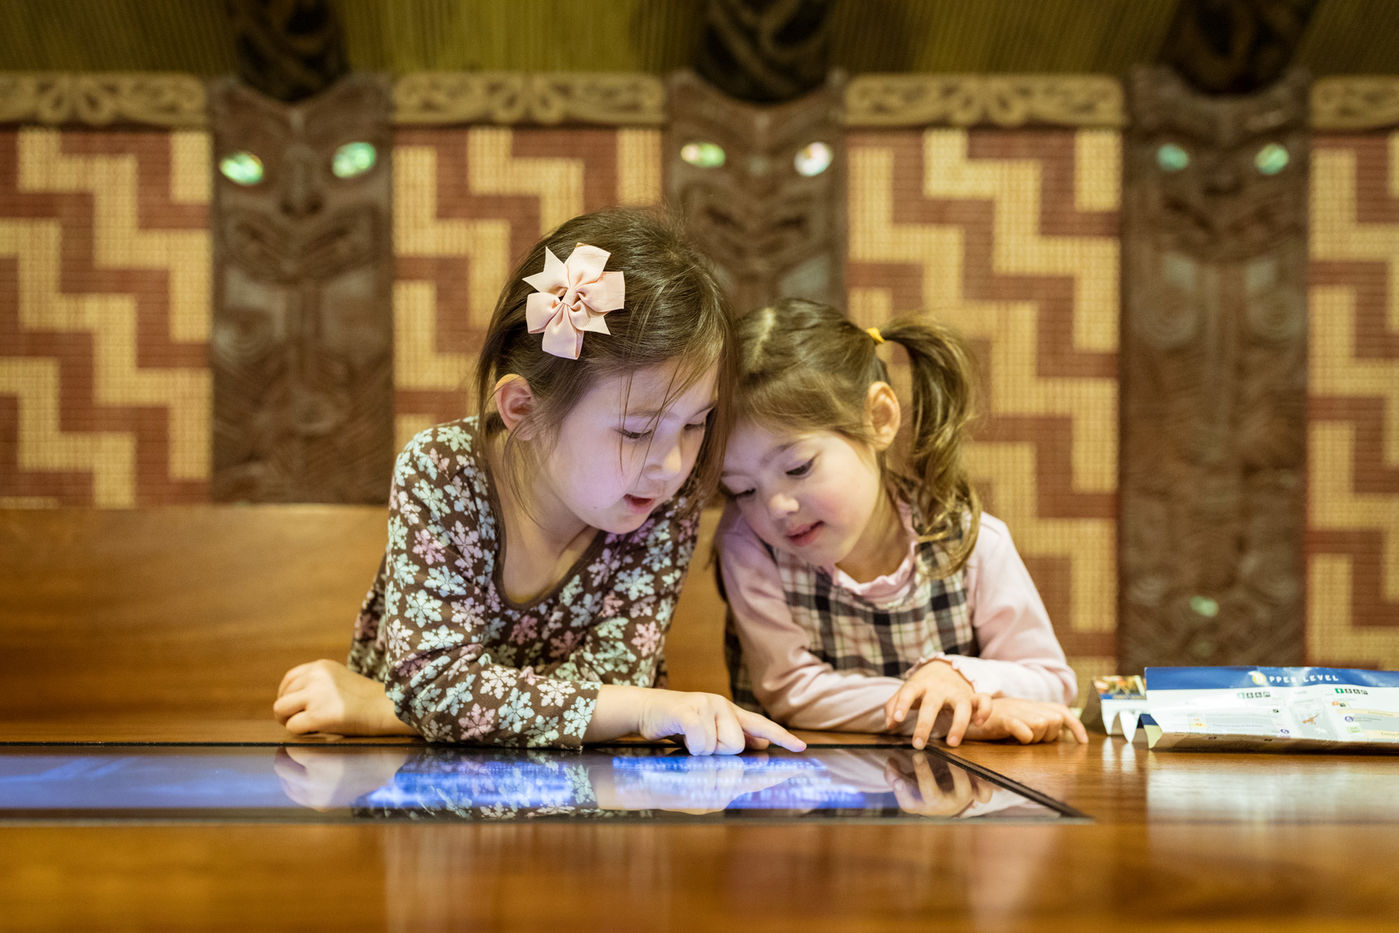 Two young girls stand close together around a touchscreen set into a wood table on the left side of the Maori meeting house.